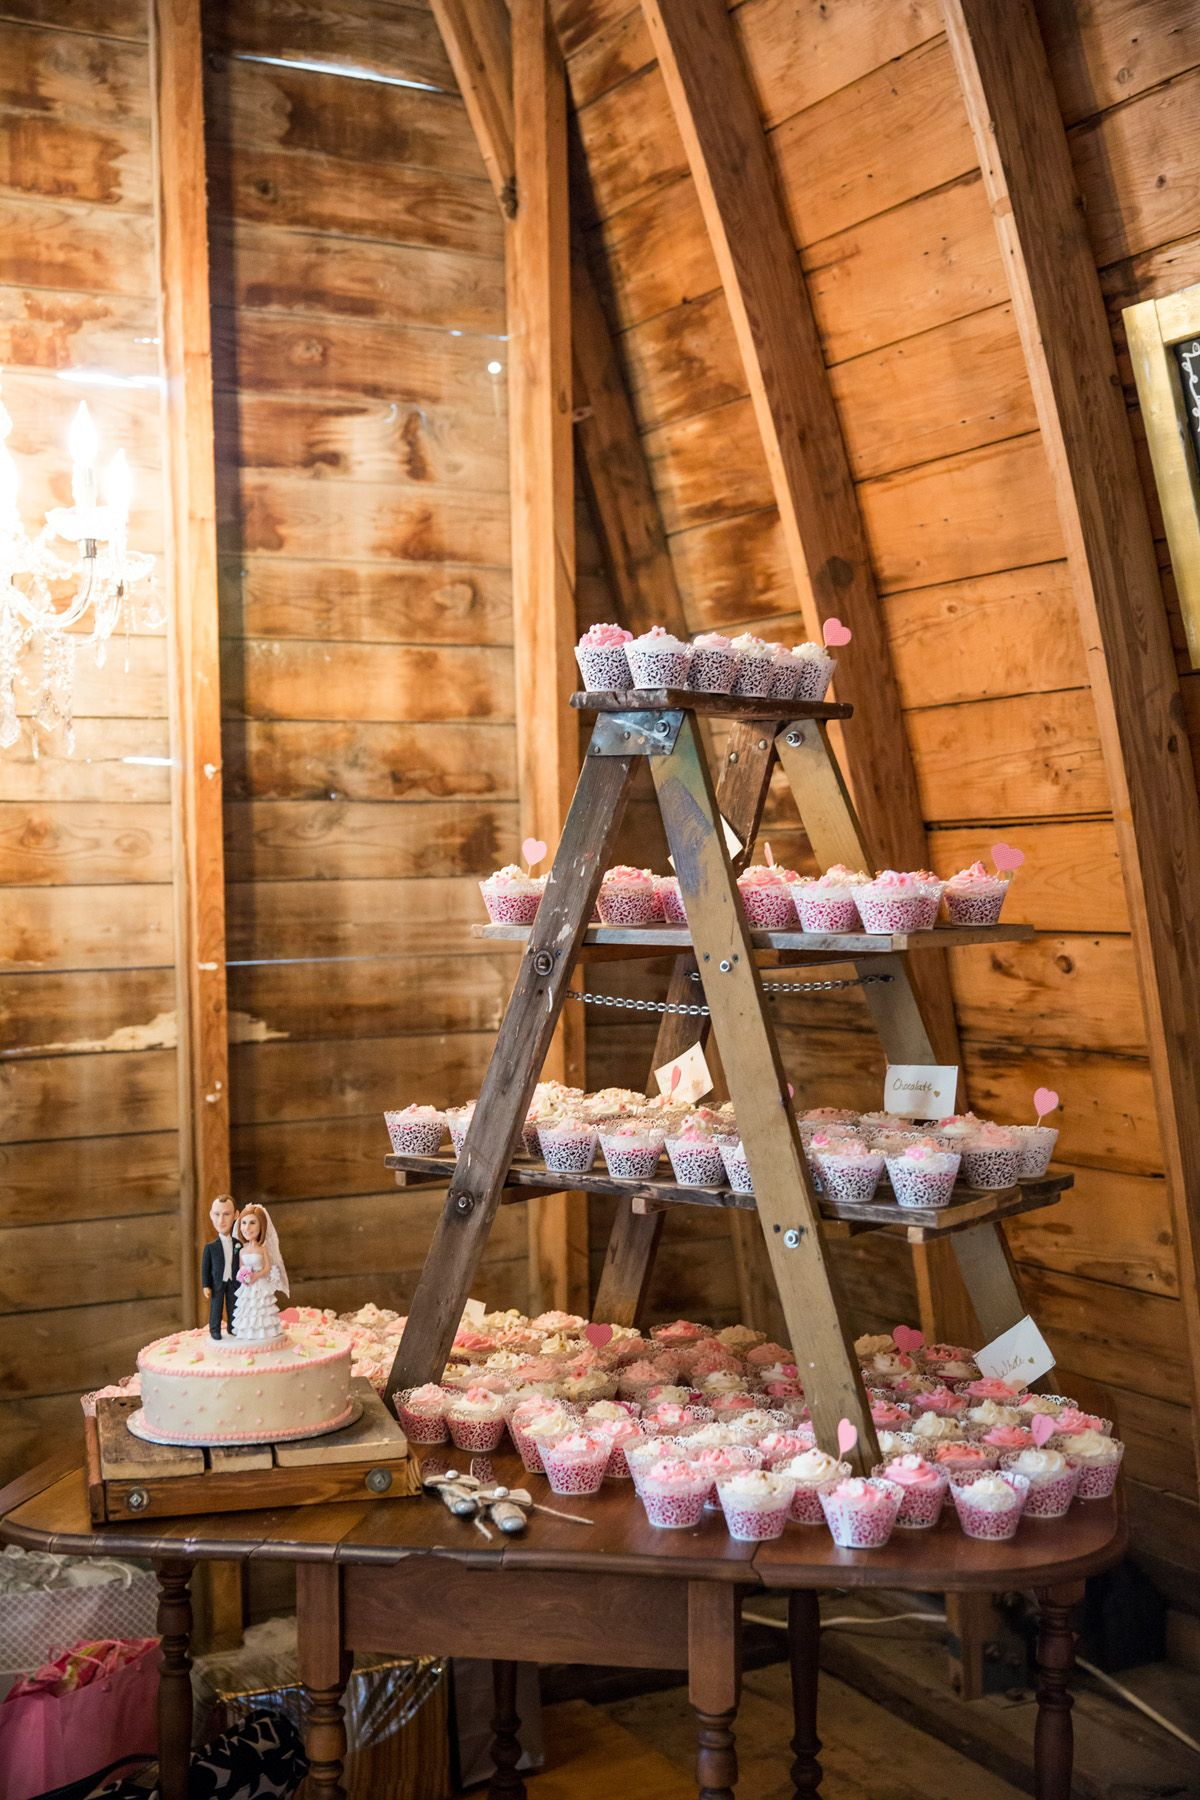 From kara s party ideas rustic dessert table display designed by - Rustic Dessert Bar Display Crafty Projects Pinterest Bar Displays Dessert Bars And Display